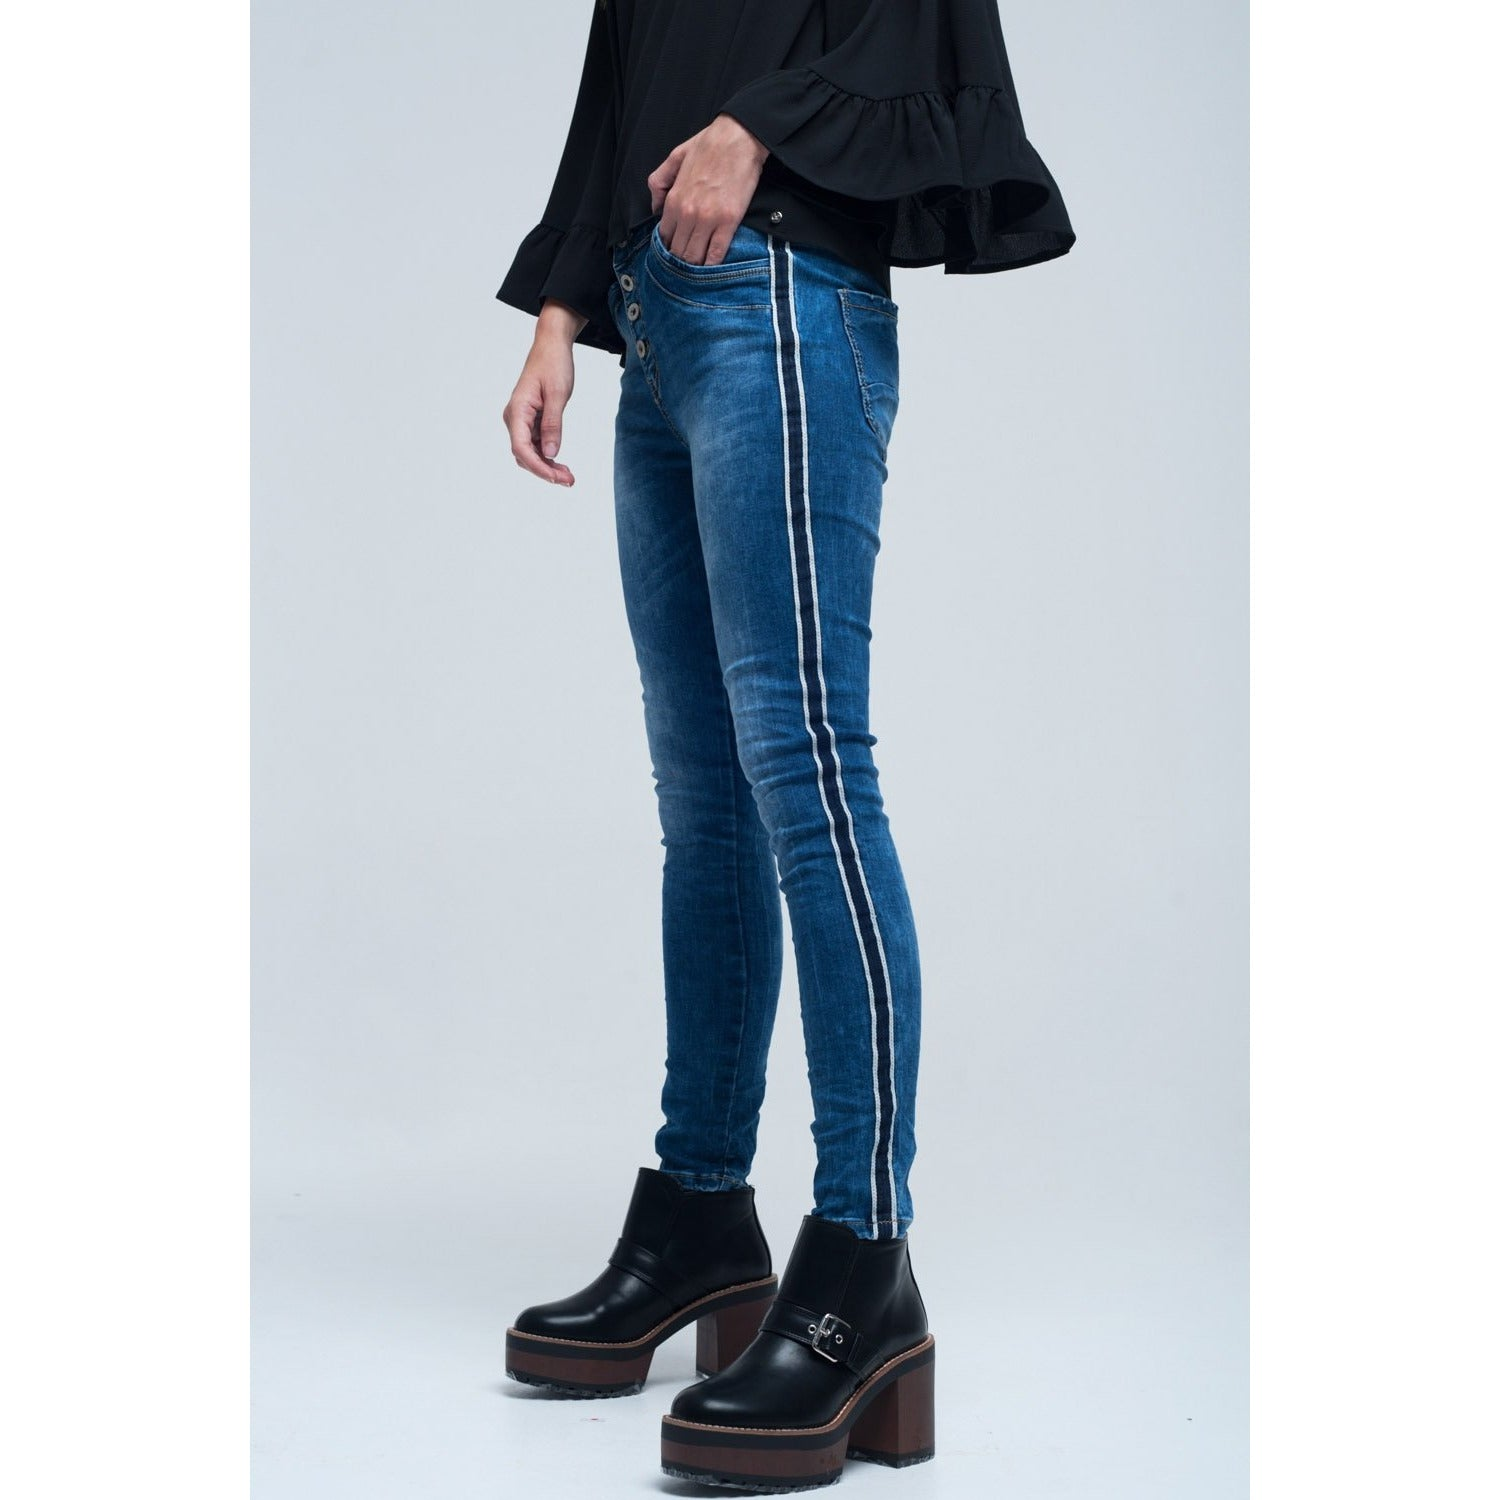 Jeans Skinny With Stripes on the Side - Miraposa